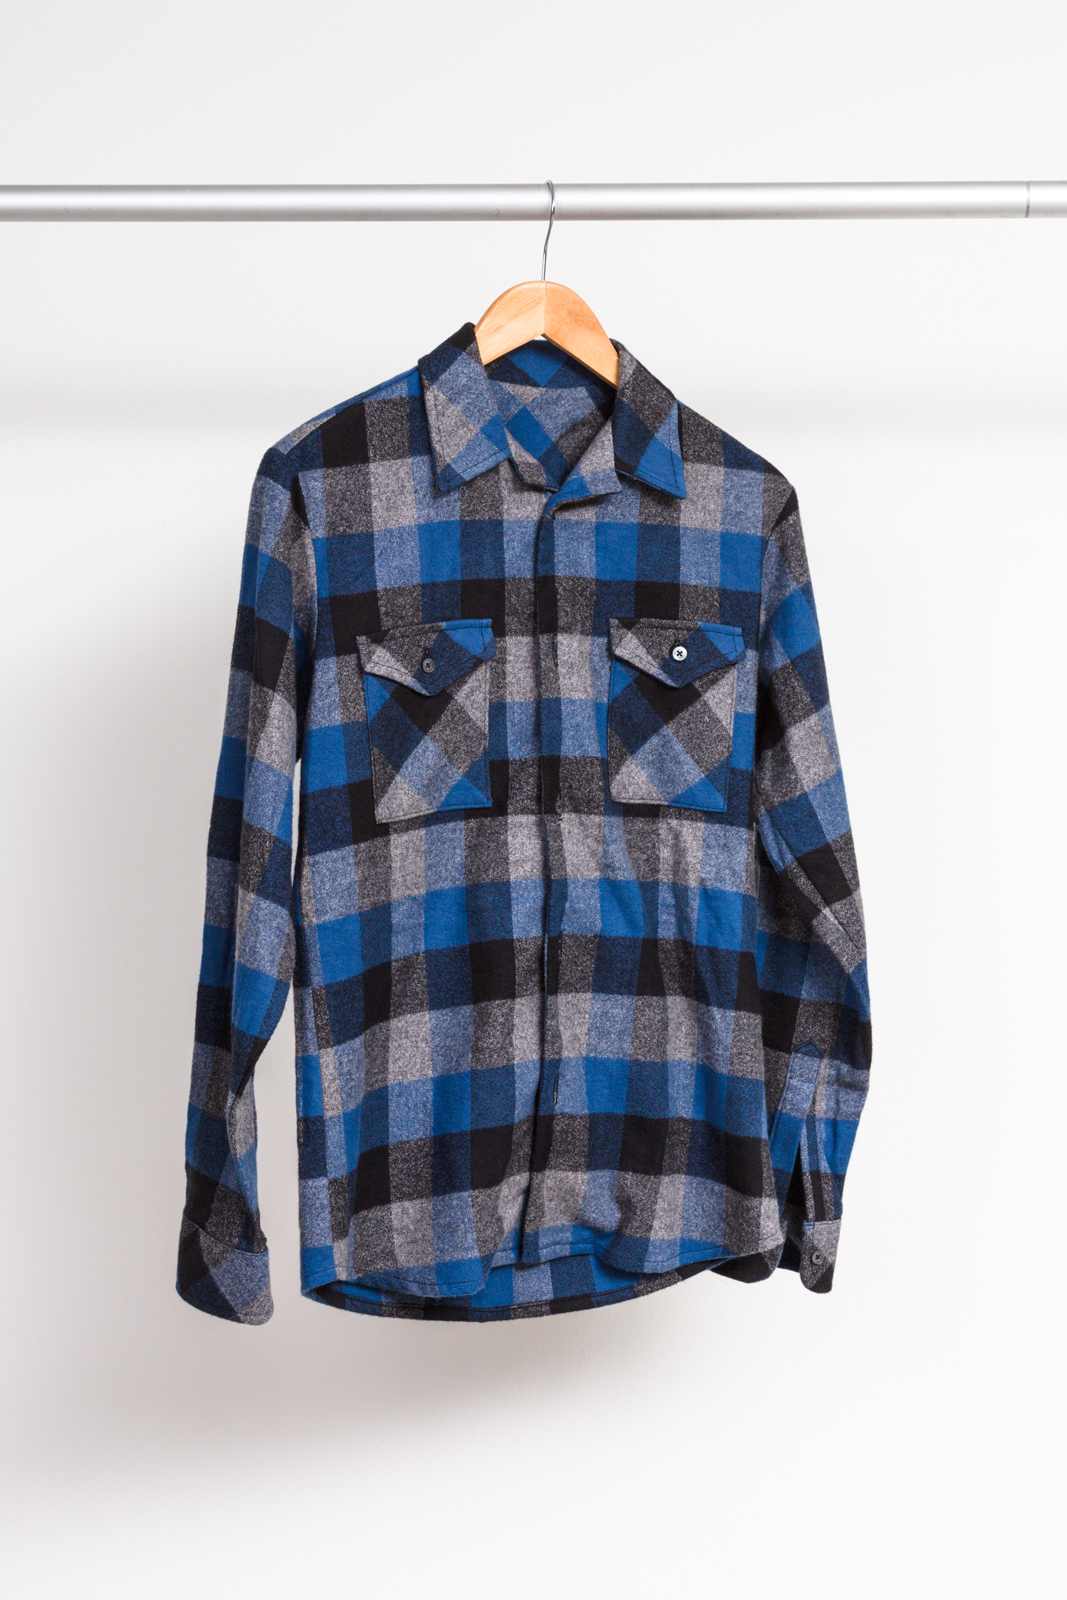 NEGRONI  BY  COLETTE PATTERNS ,  MAMMOTH FLANNEL